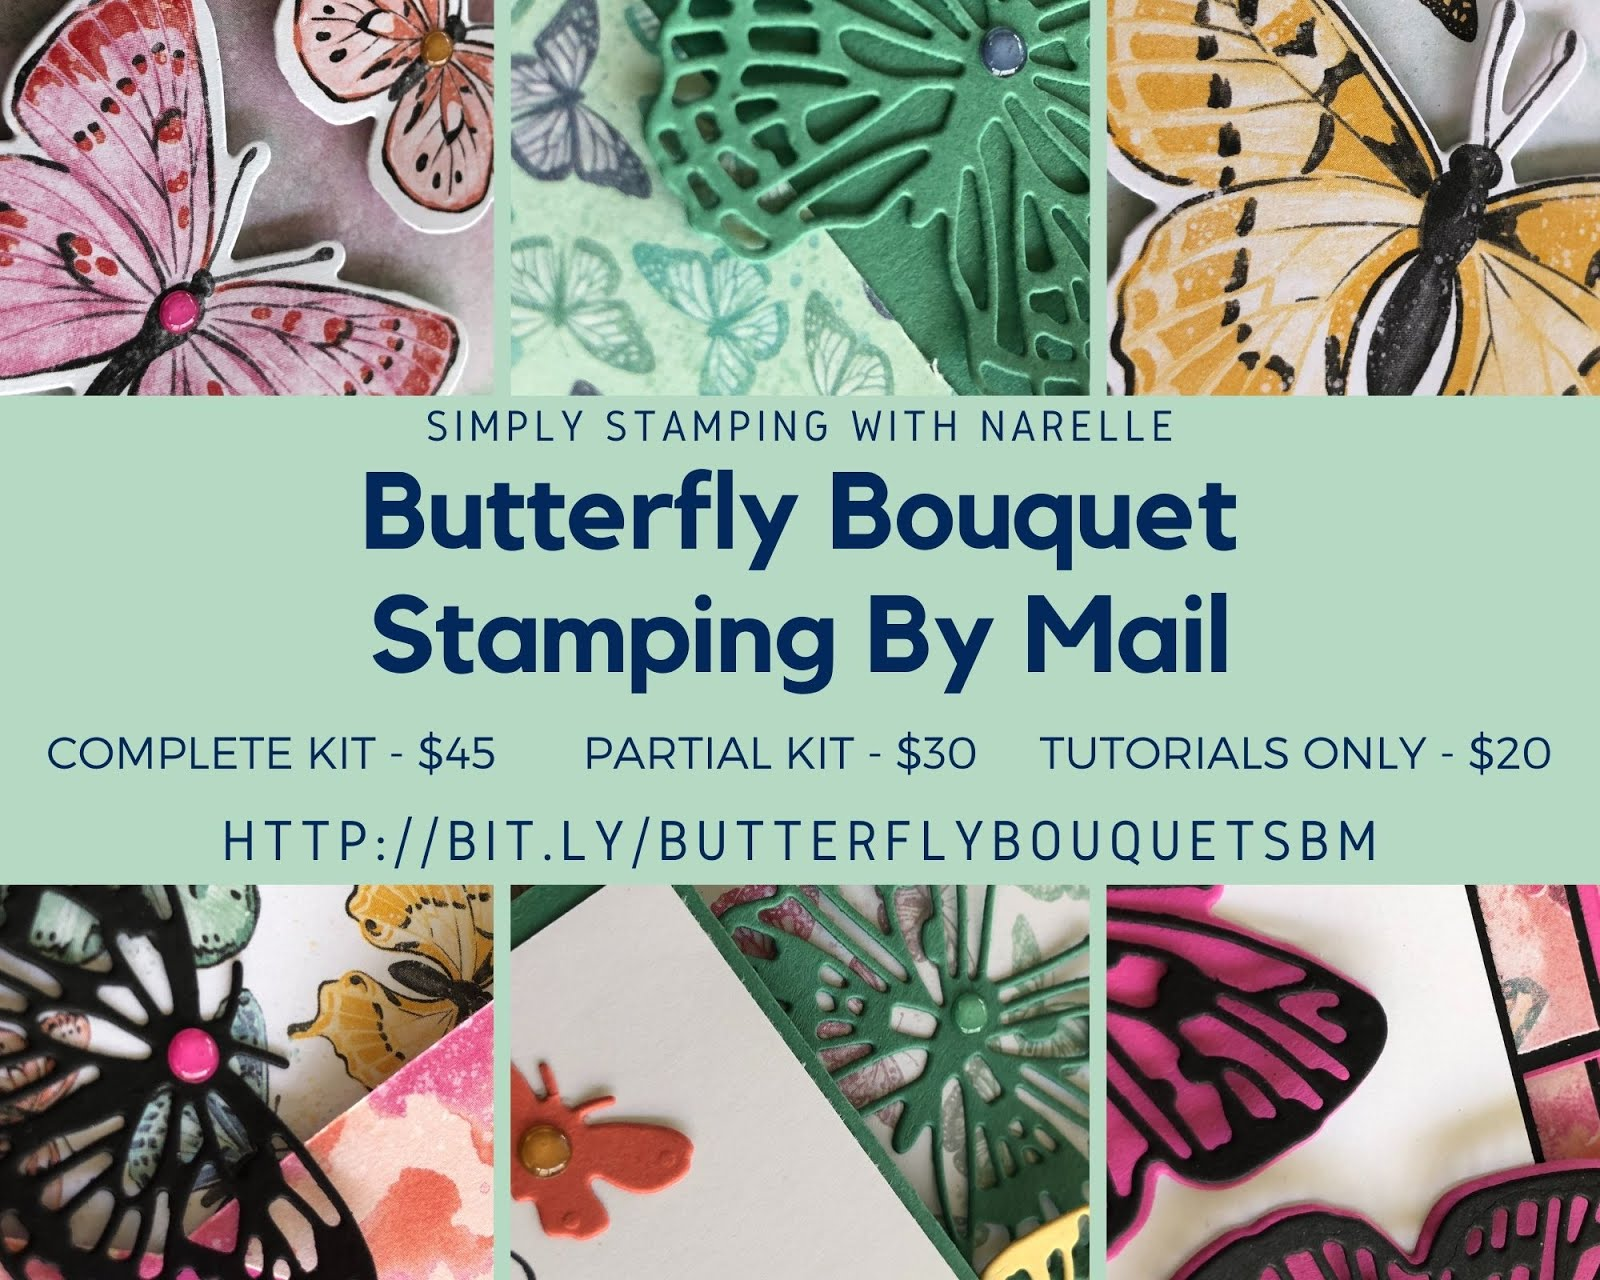 Butterfly Bouquet Stamping By Mail